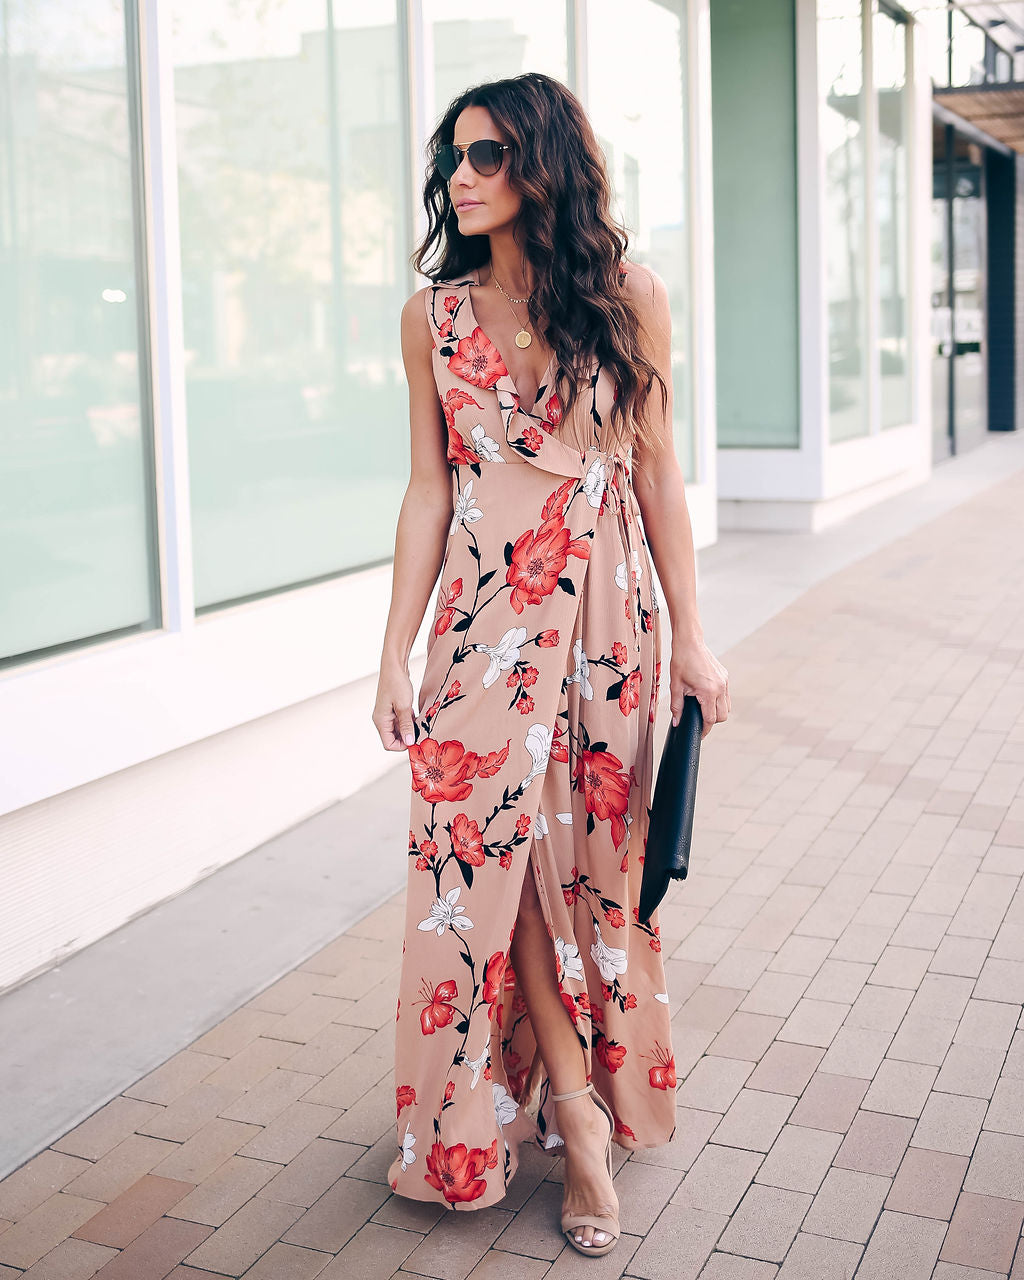 d483b749dd Detail Product. FILTER ← Home - 50% SALE - Cherry Blossom Wrap Maxi Dress  ...